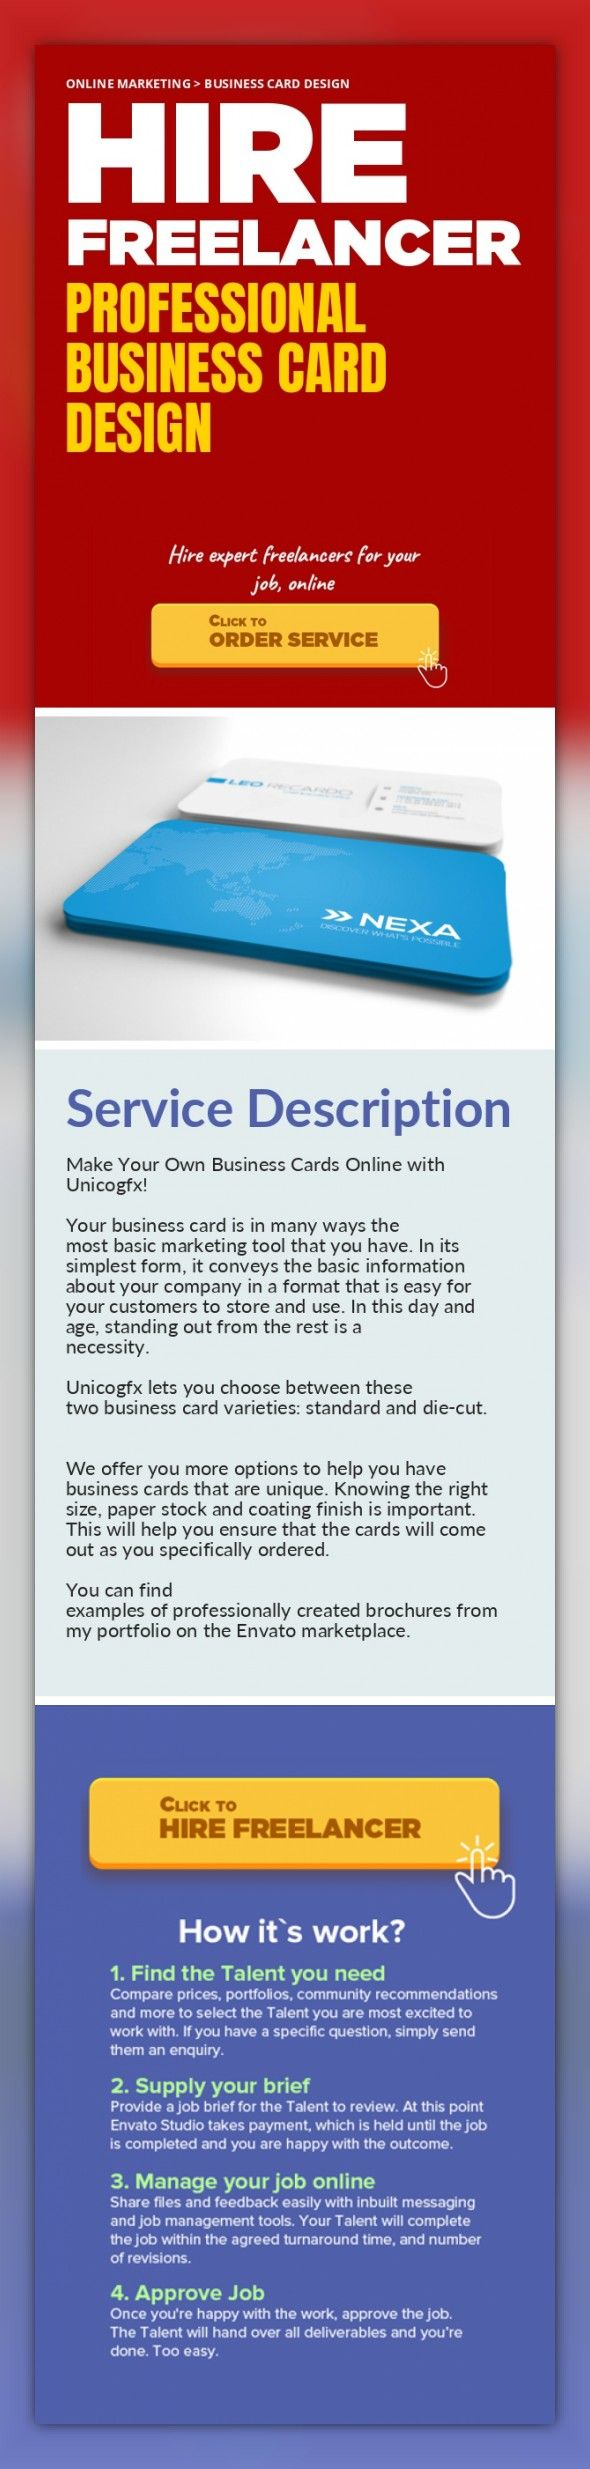 Professional Business Card Design Online Marketing, Business Card Design   Make Your Own Business Cards Online with Unicogfx!    Your business card is in many ways the most basic marketing tool that you have. In its simplest form, it conveys the basic information about your company in a format that is easy for your customers to store and use. In this day and age, standing out from the rest is a ne...